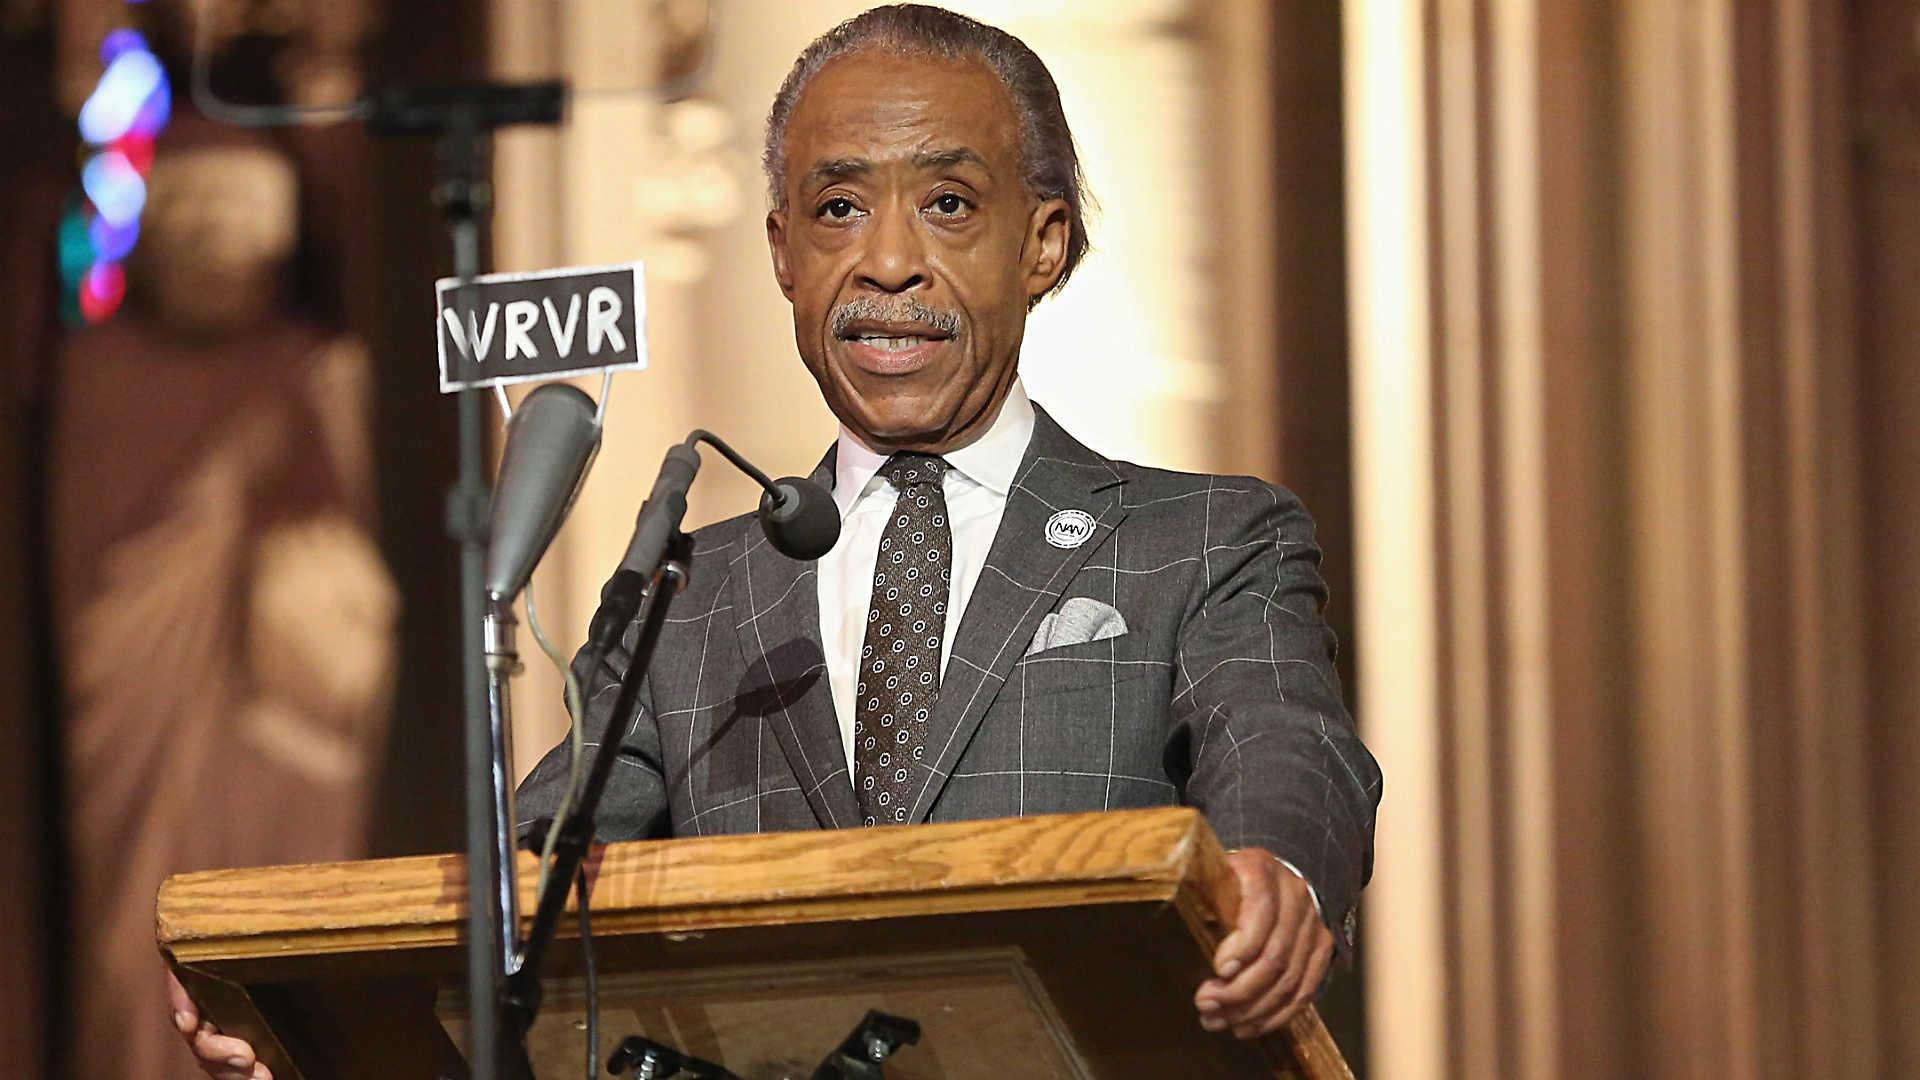 BREAKING NEWS: Rev. Al Sharpton IS GOING TO PRISON ...